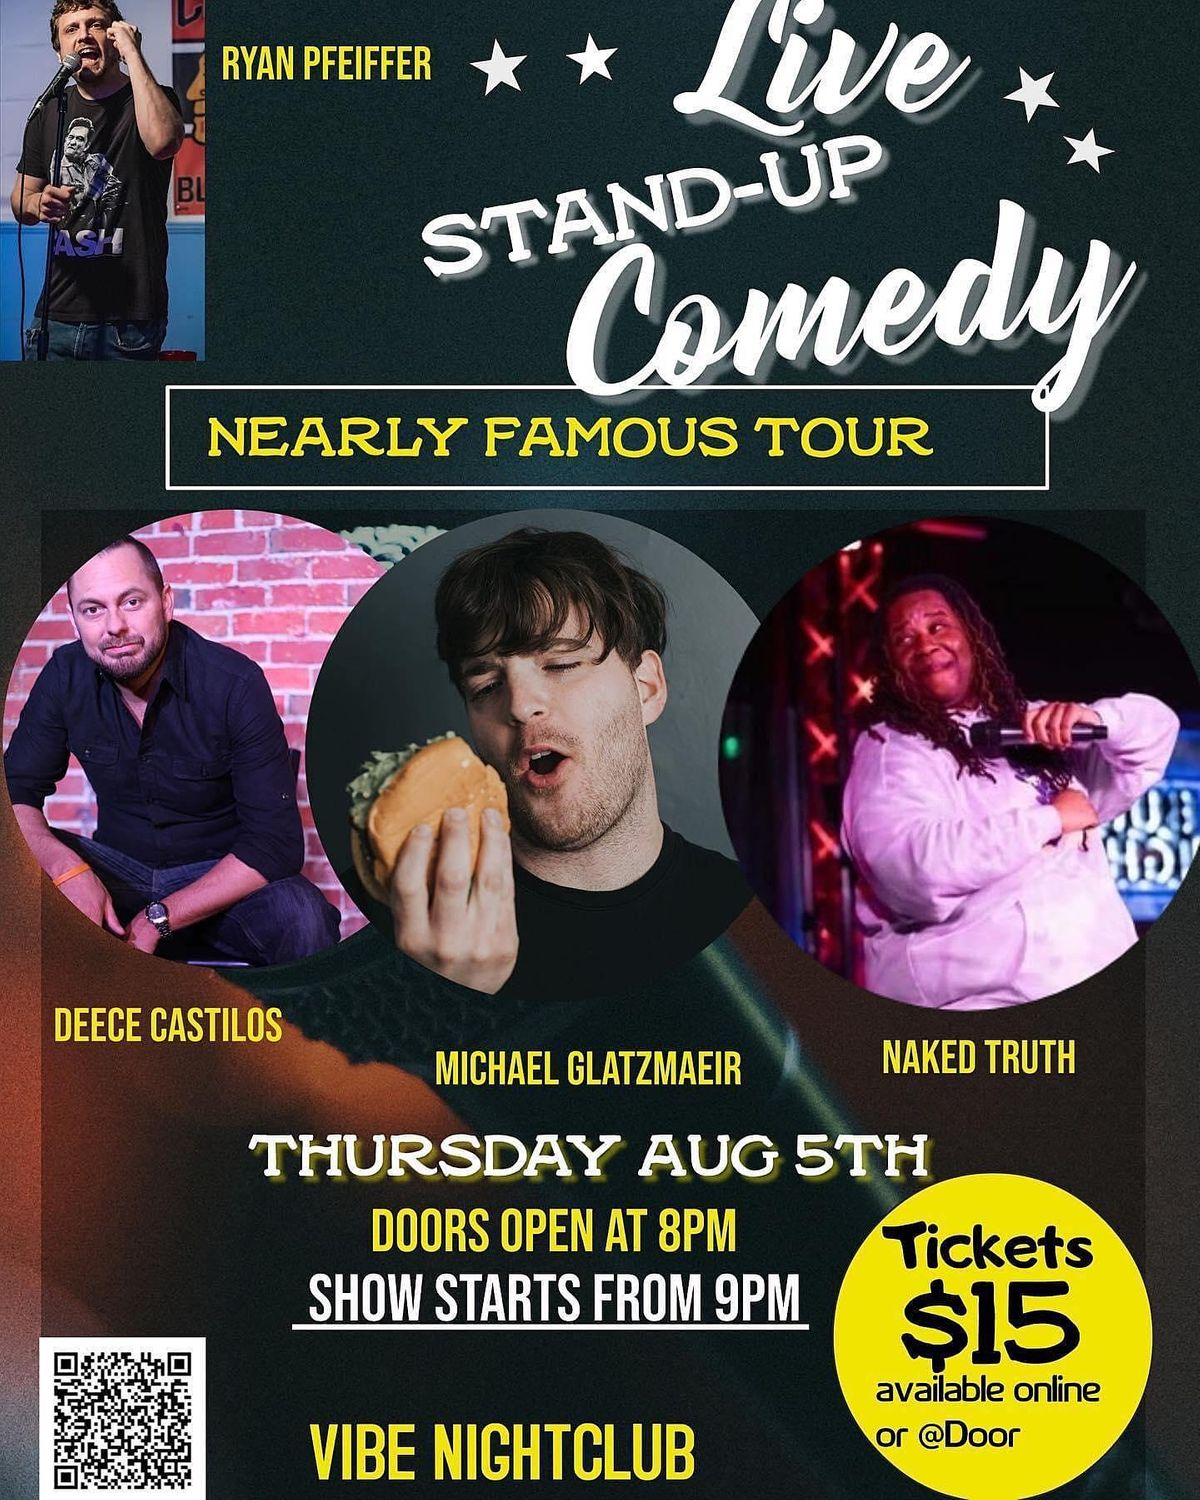 Michael Glatzmaier's Nearly Famous Tour Improvised Musical Stand-Up Comedy, 5 August | Event in Fort Walton Beach